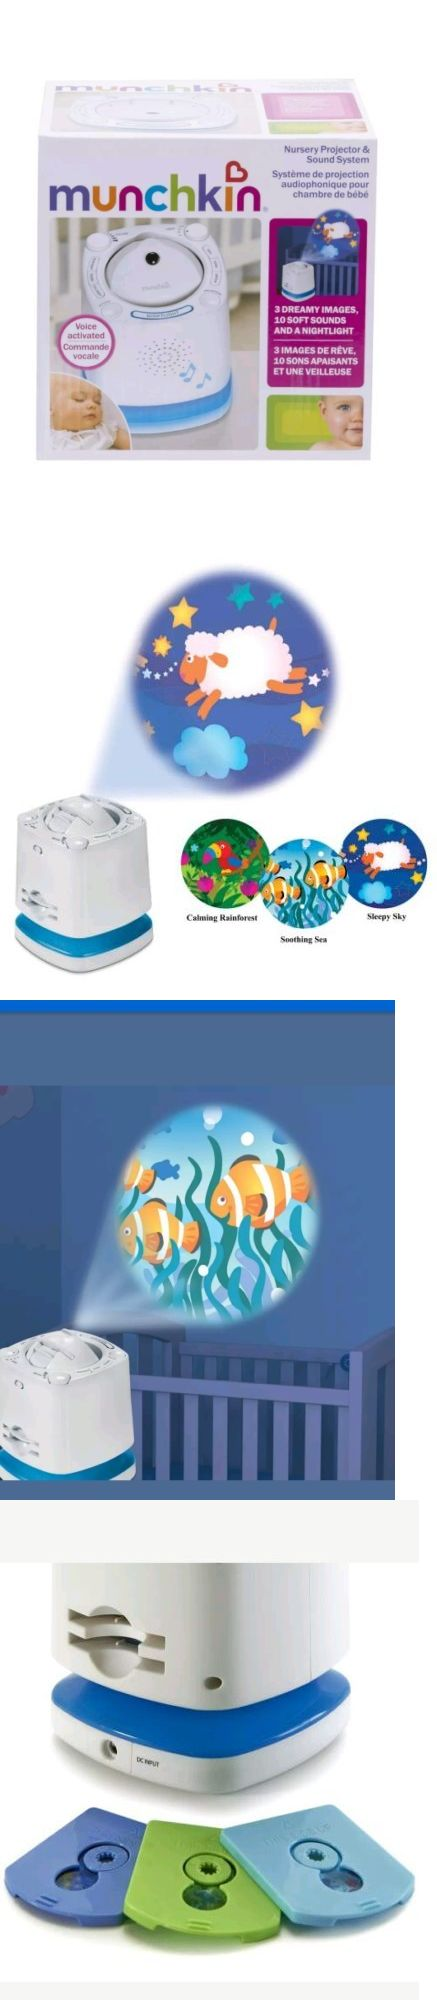 Night Lights 121153 Nursery Voice Activated Sleep Projector Sound System And Baby Soother Munchkin It Now Only 18 On Ebay